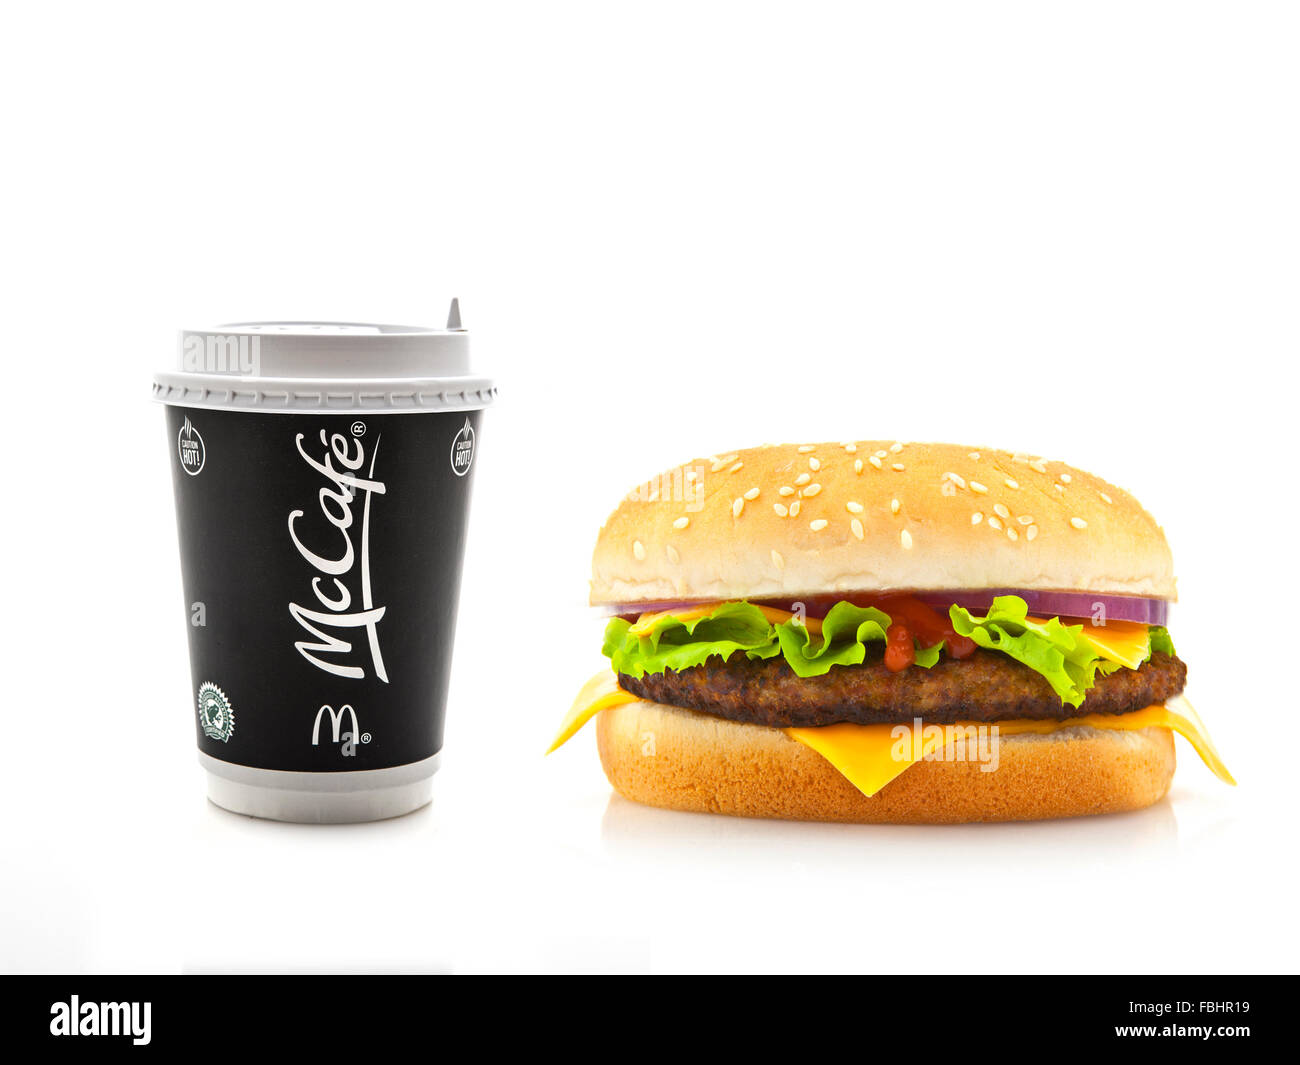 McDonalds McCafe Coffee with Cheeseburger on a white background - Stock Image